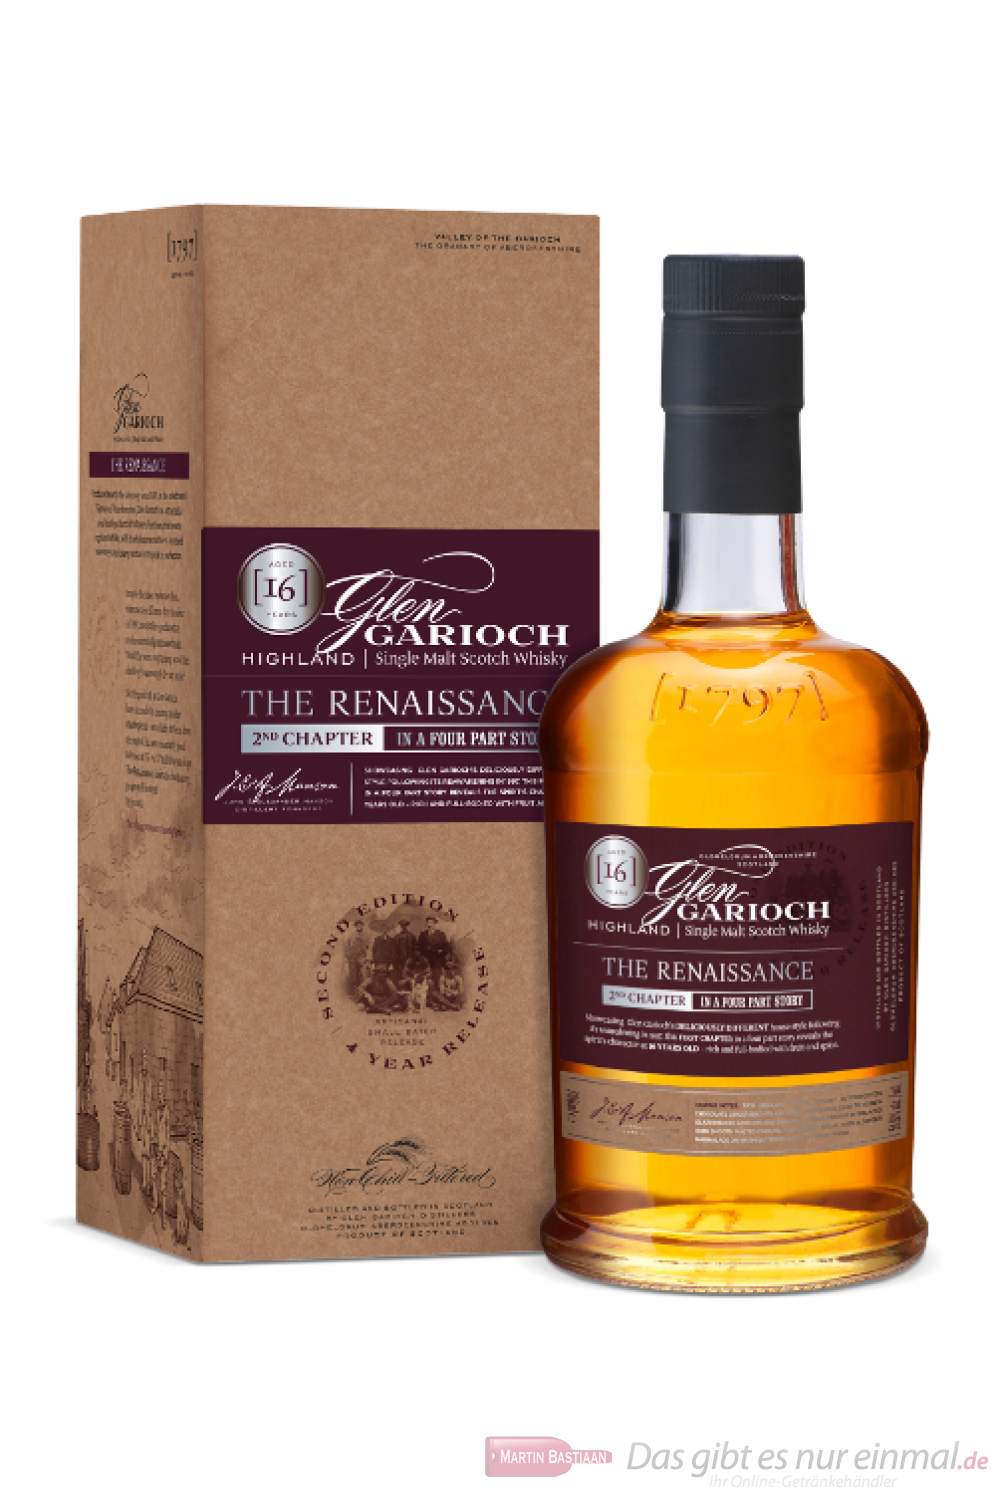 Glen Garioch 16 Years The Renaissance 2 St Chapter